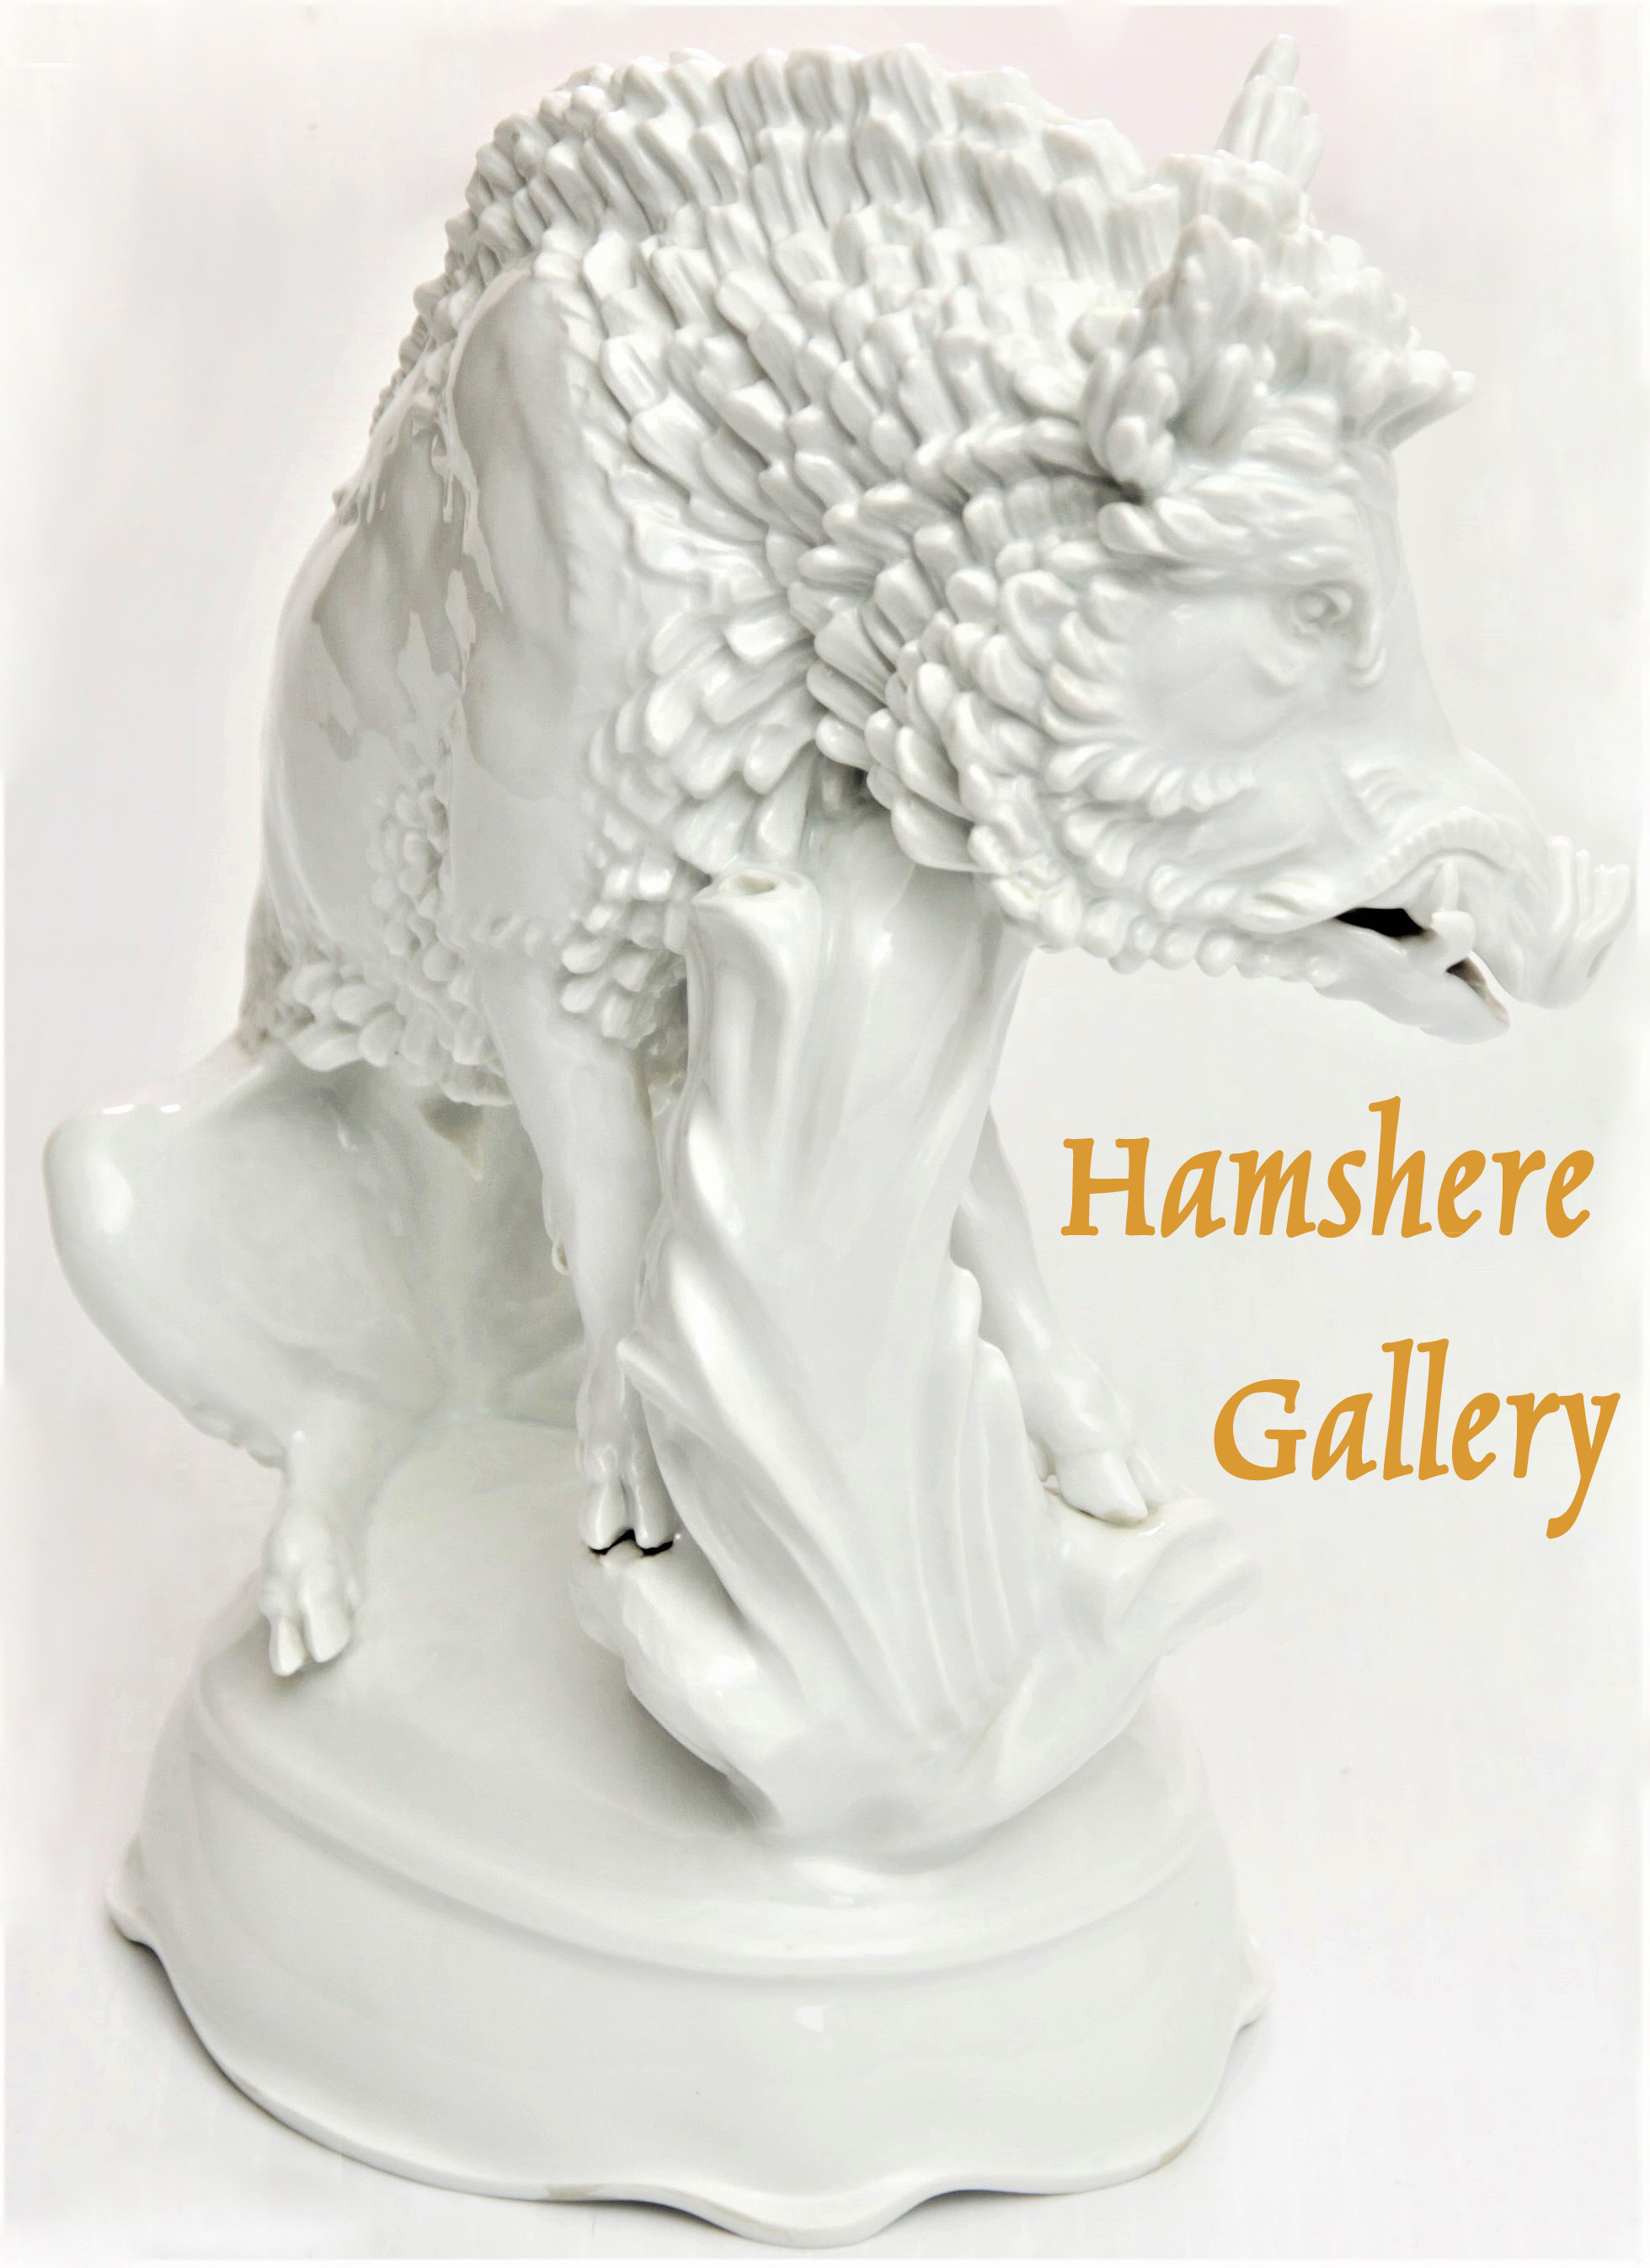 Click to see full size: Early 20th century Meissen boar after Max Esser, (German, 1885 – 1943)- Early 20th century Meissen boar after Max Esser, (German, 1885 – 1943)